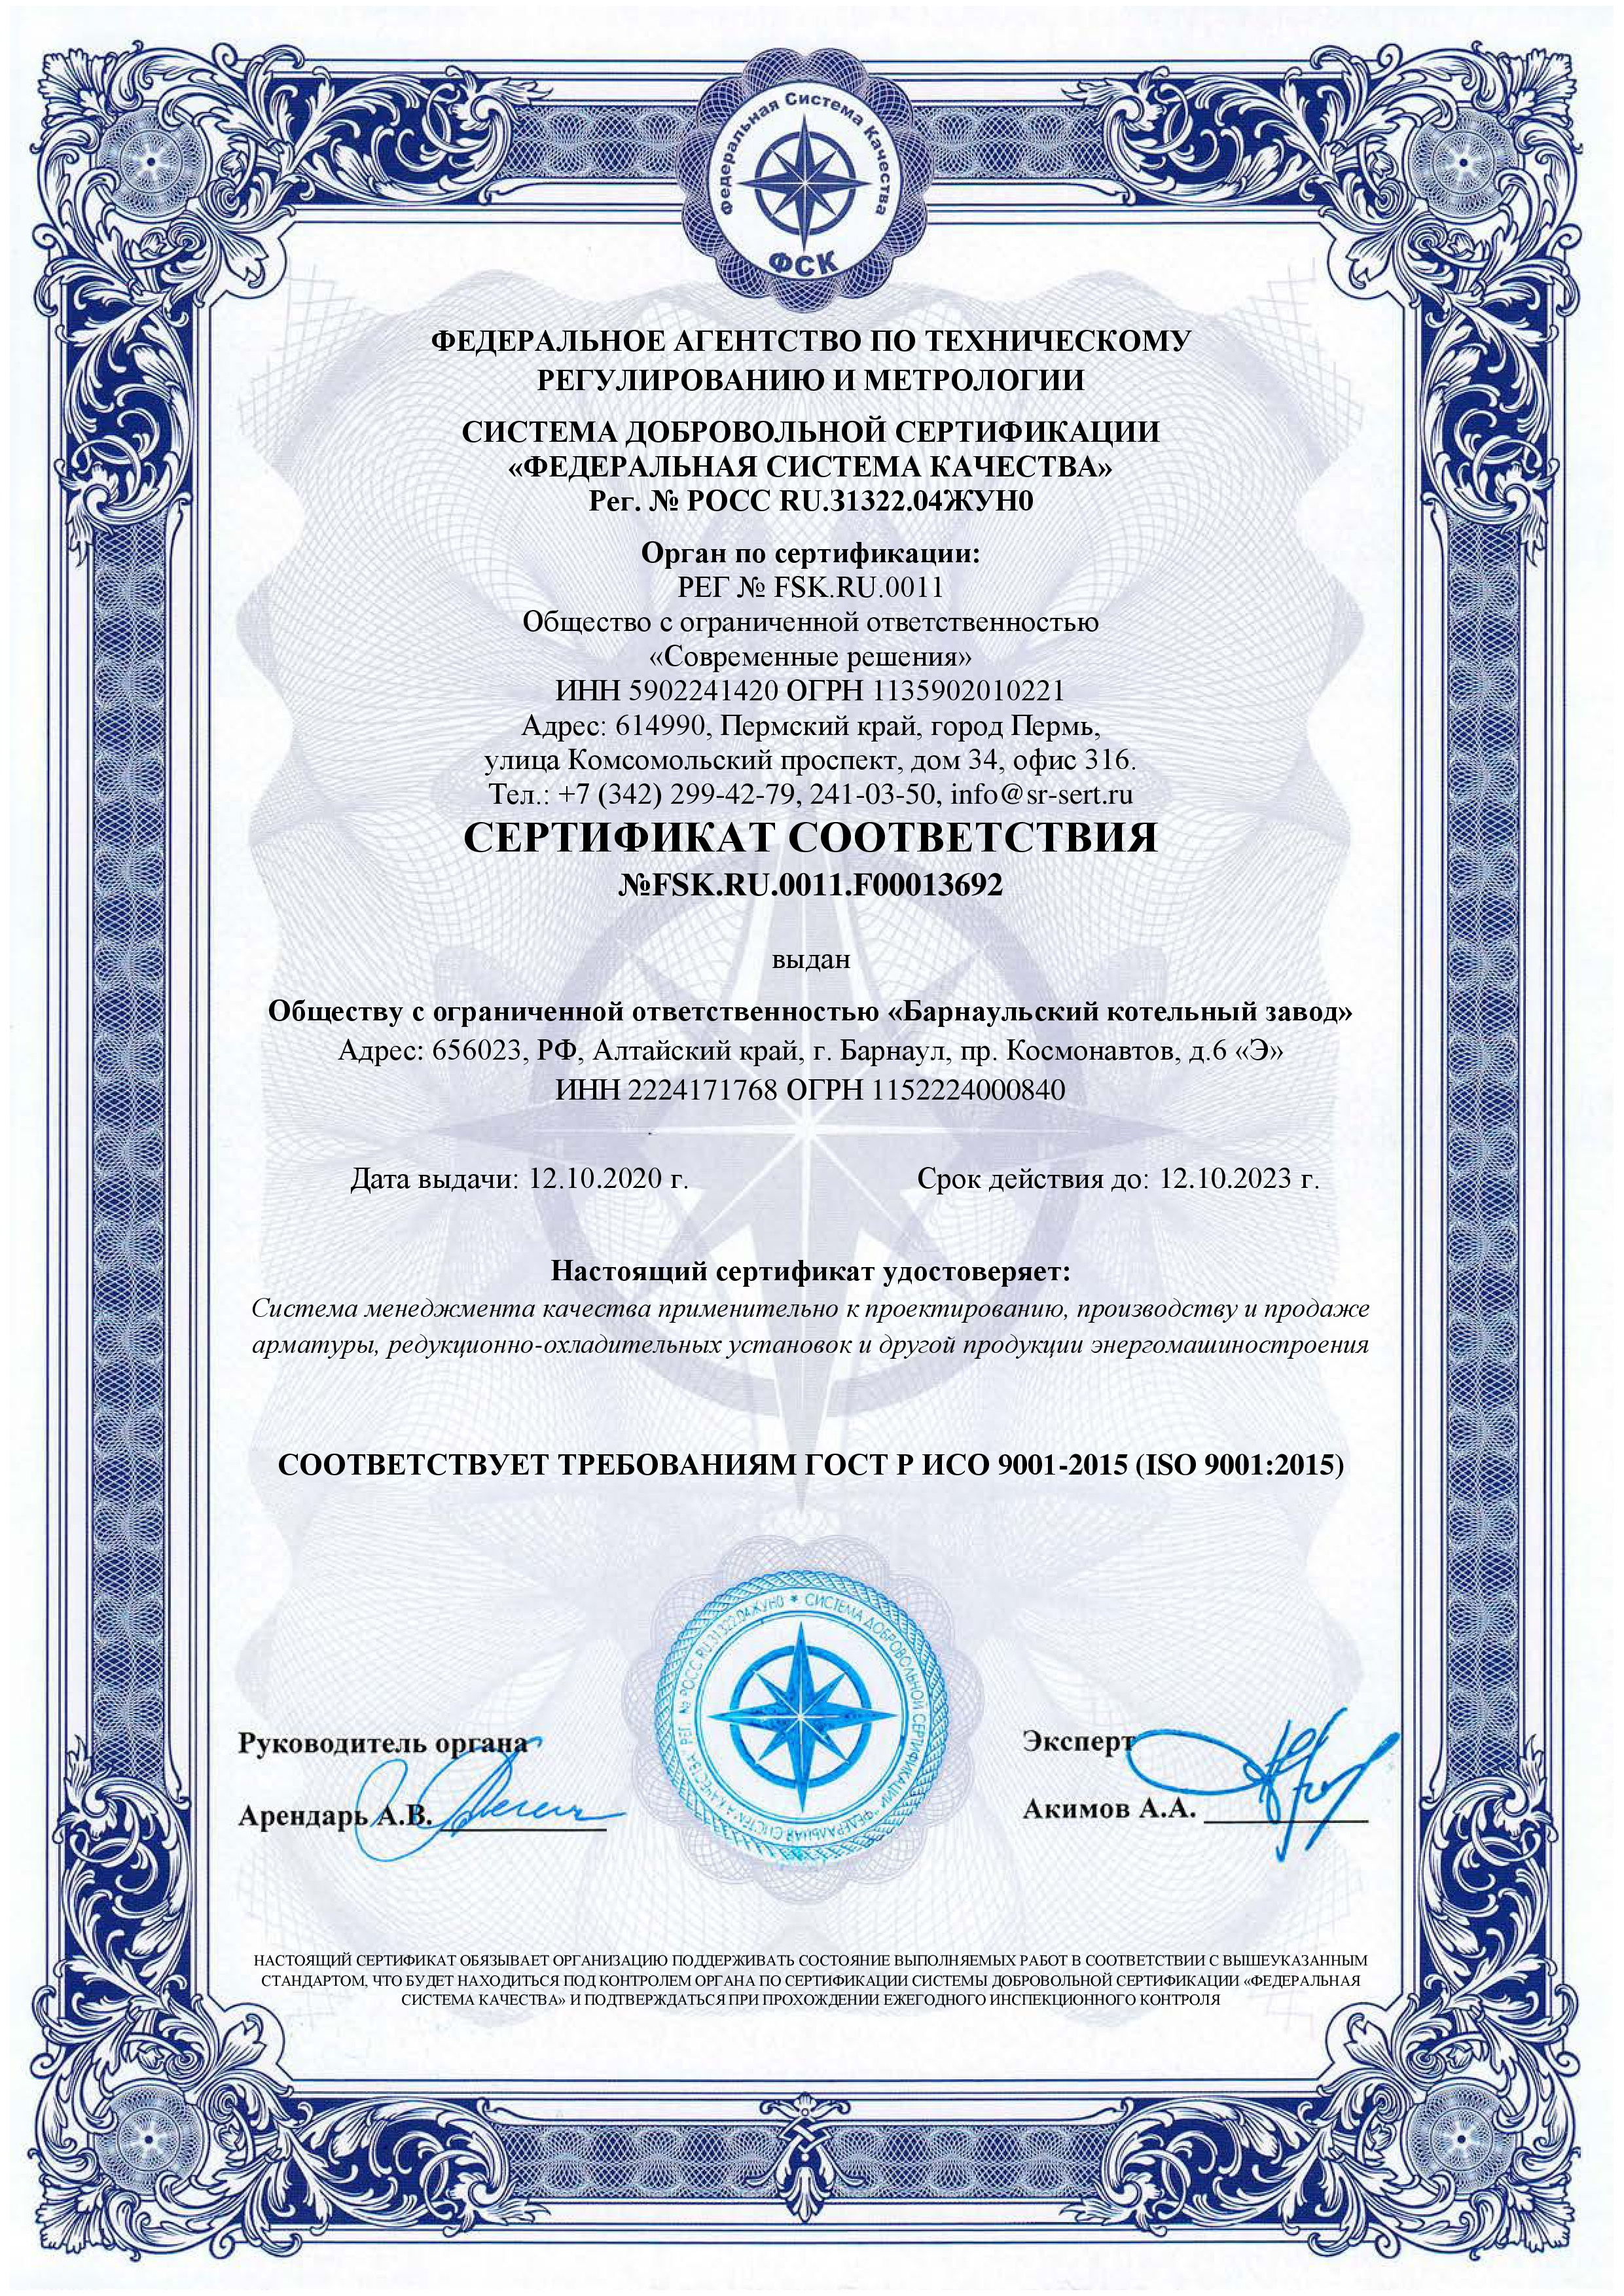 CERTIFICATE OF CONFORMITY TO GOST R ISO 9001-2015